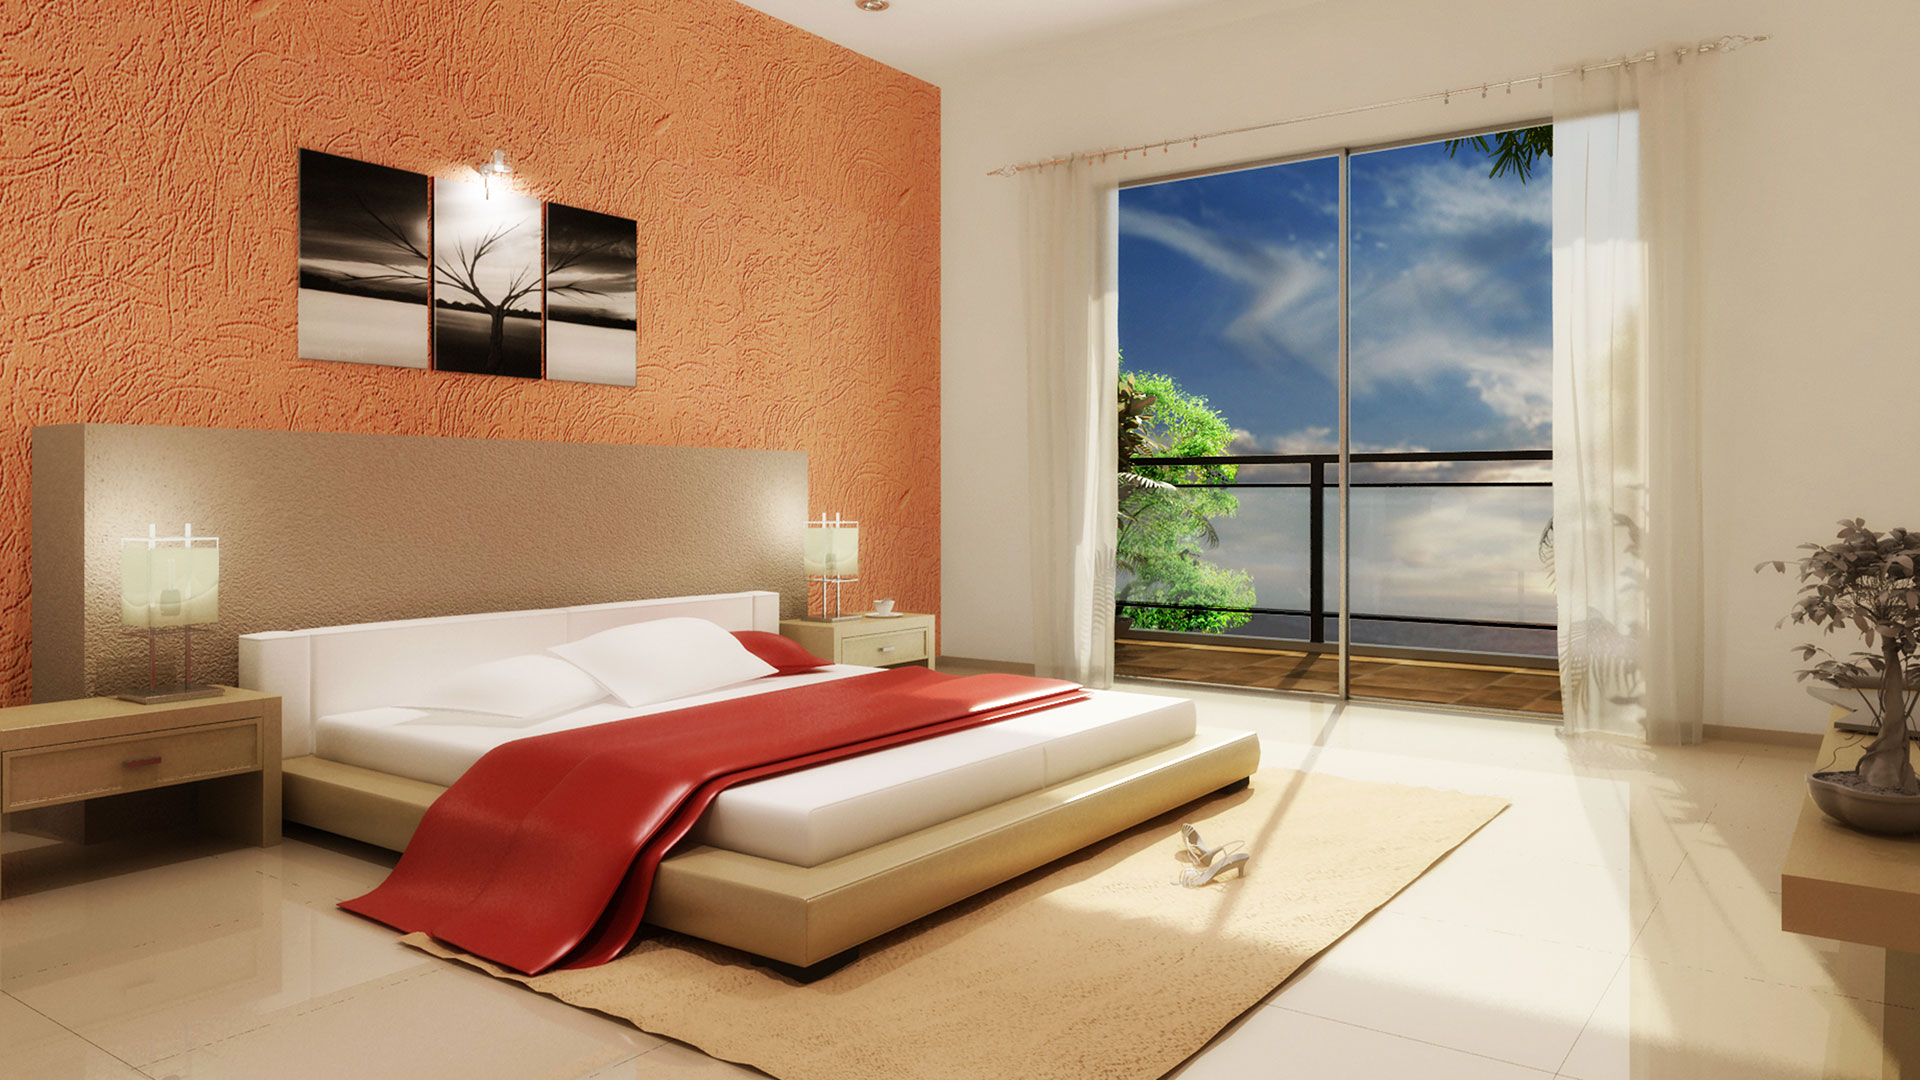 Prestige-Brooklyn-Heights-Apartment-in-JP-Nagar-Bangalore-Image-01